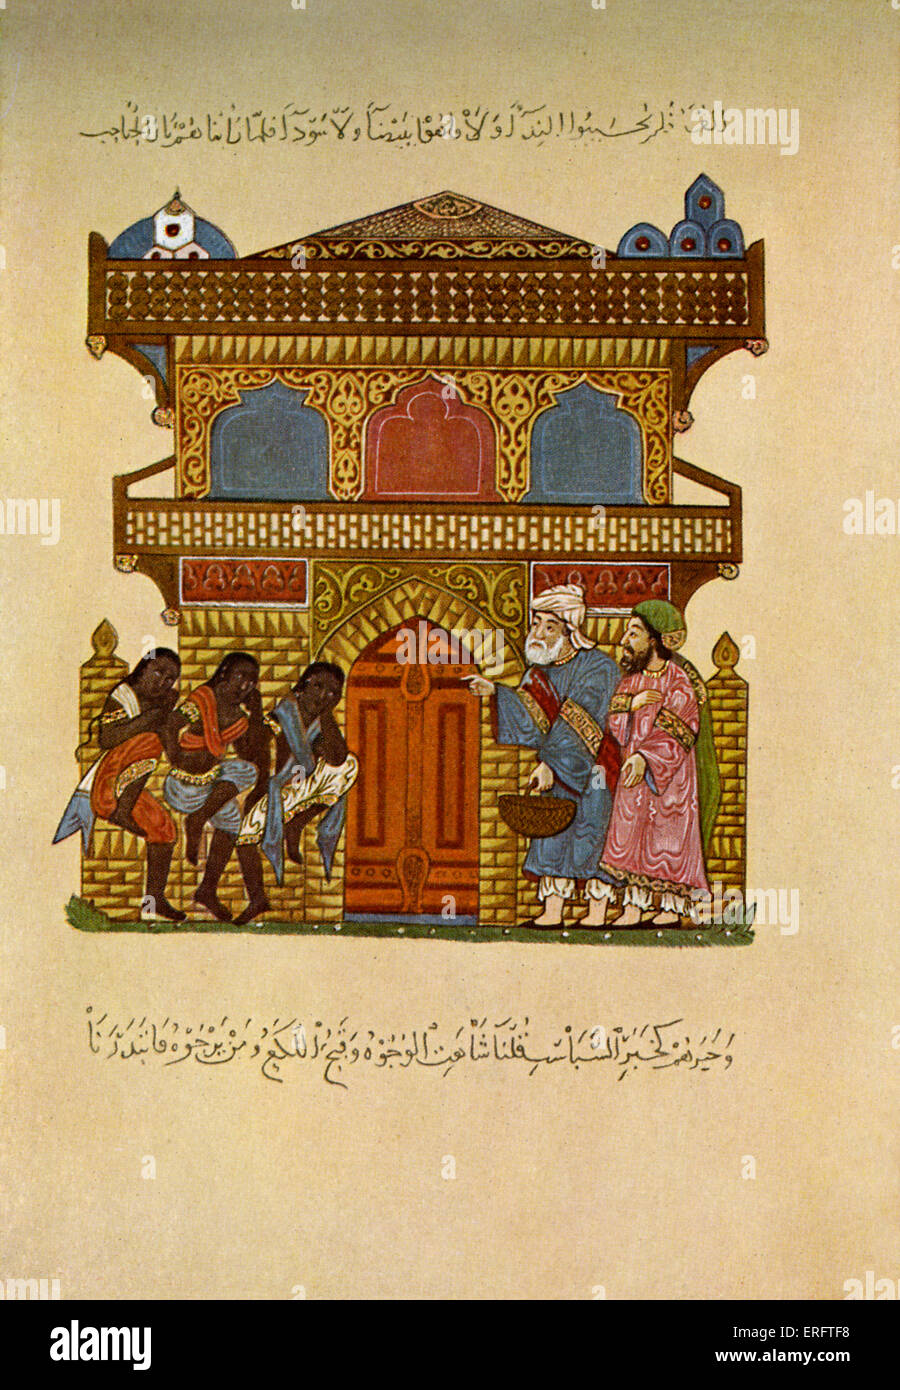 Arab life during the Abbasidian times - miniatures from the Maqamat of al-Hariri.  Abassid caliphate (758-1258) Stock Photo